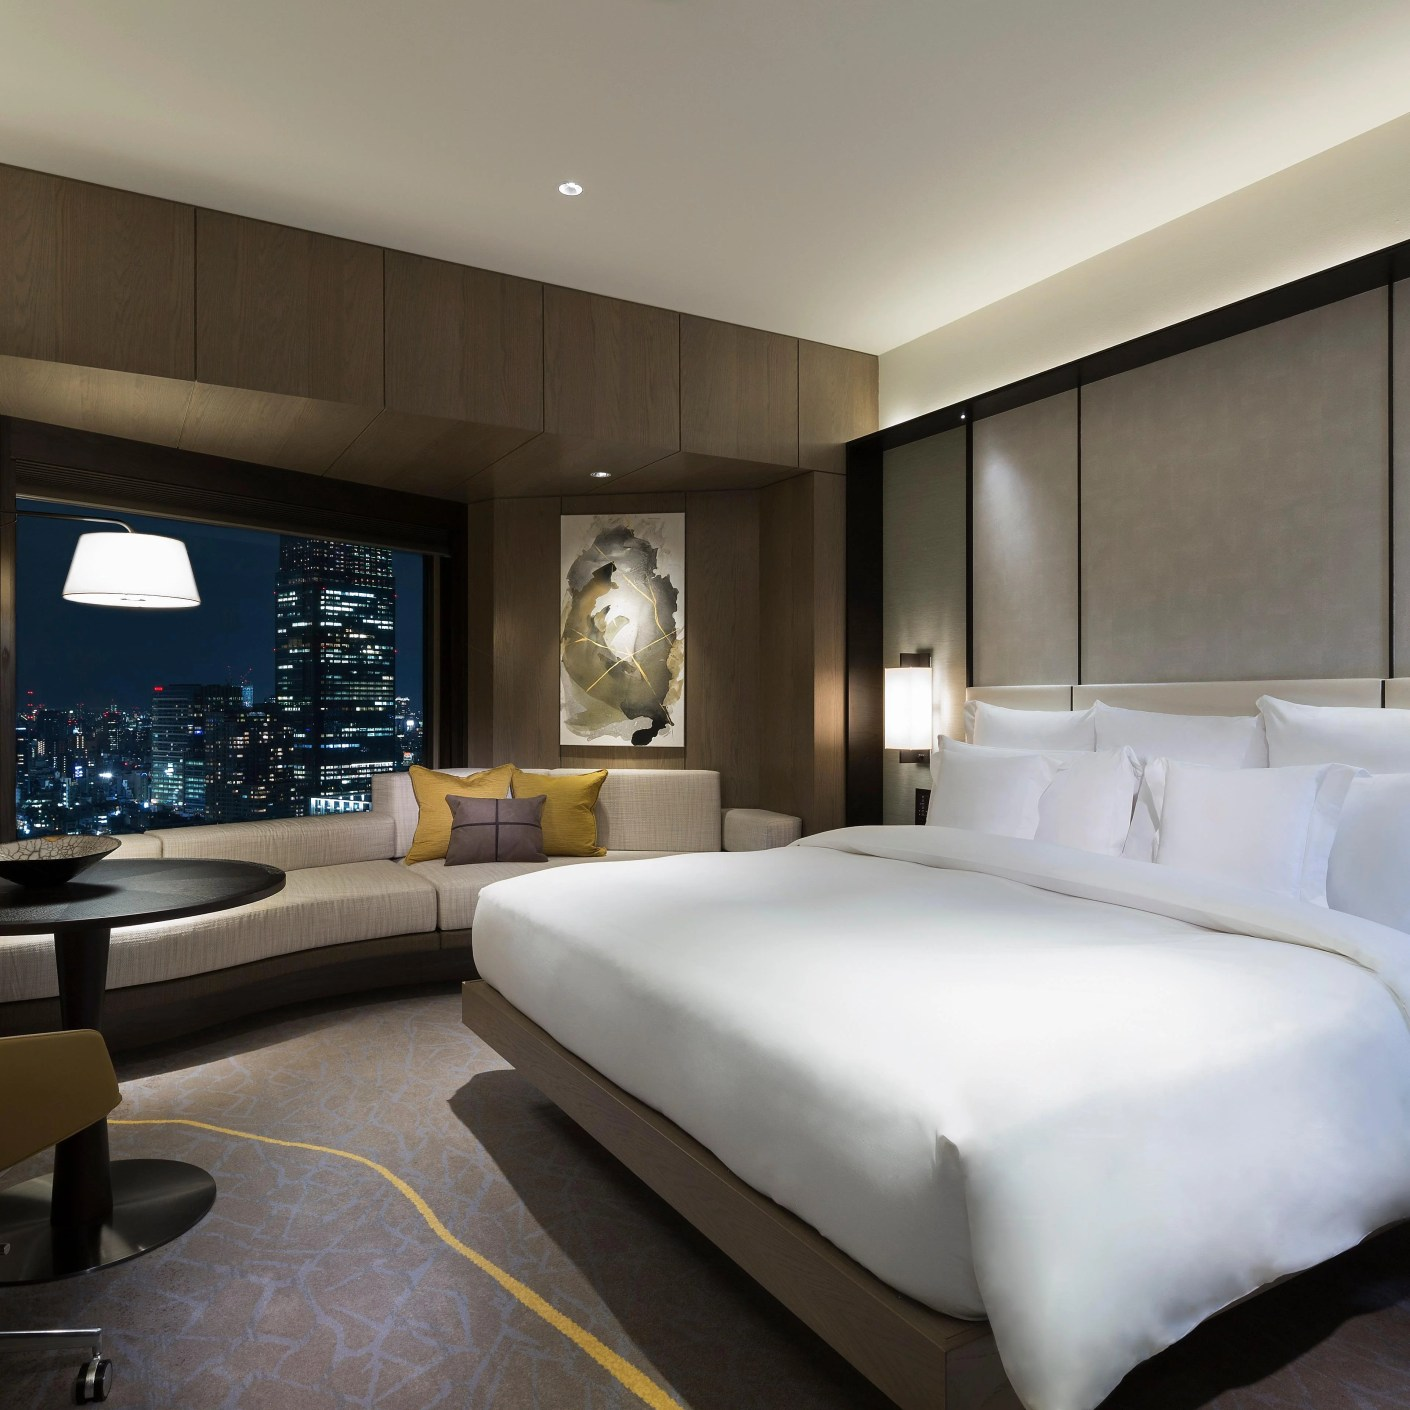 Redeeming Hotel Points in Tokyo for Great Value - The Points Guy